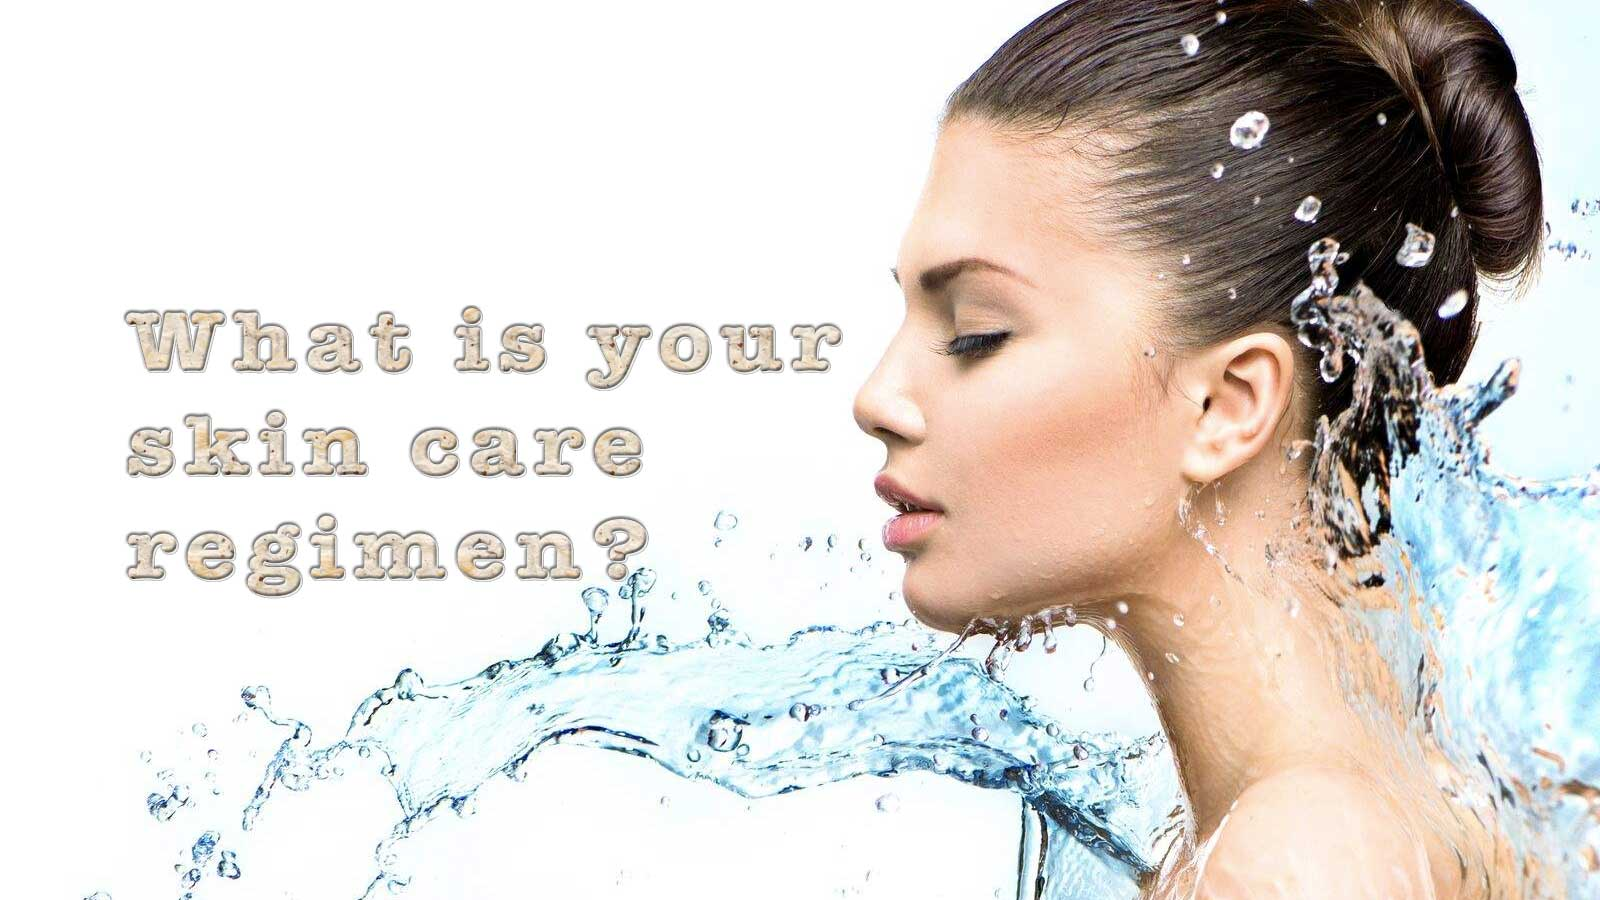 Beauty starts with good skin care